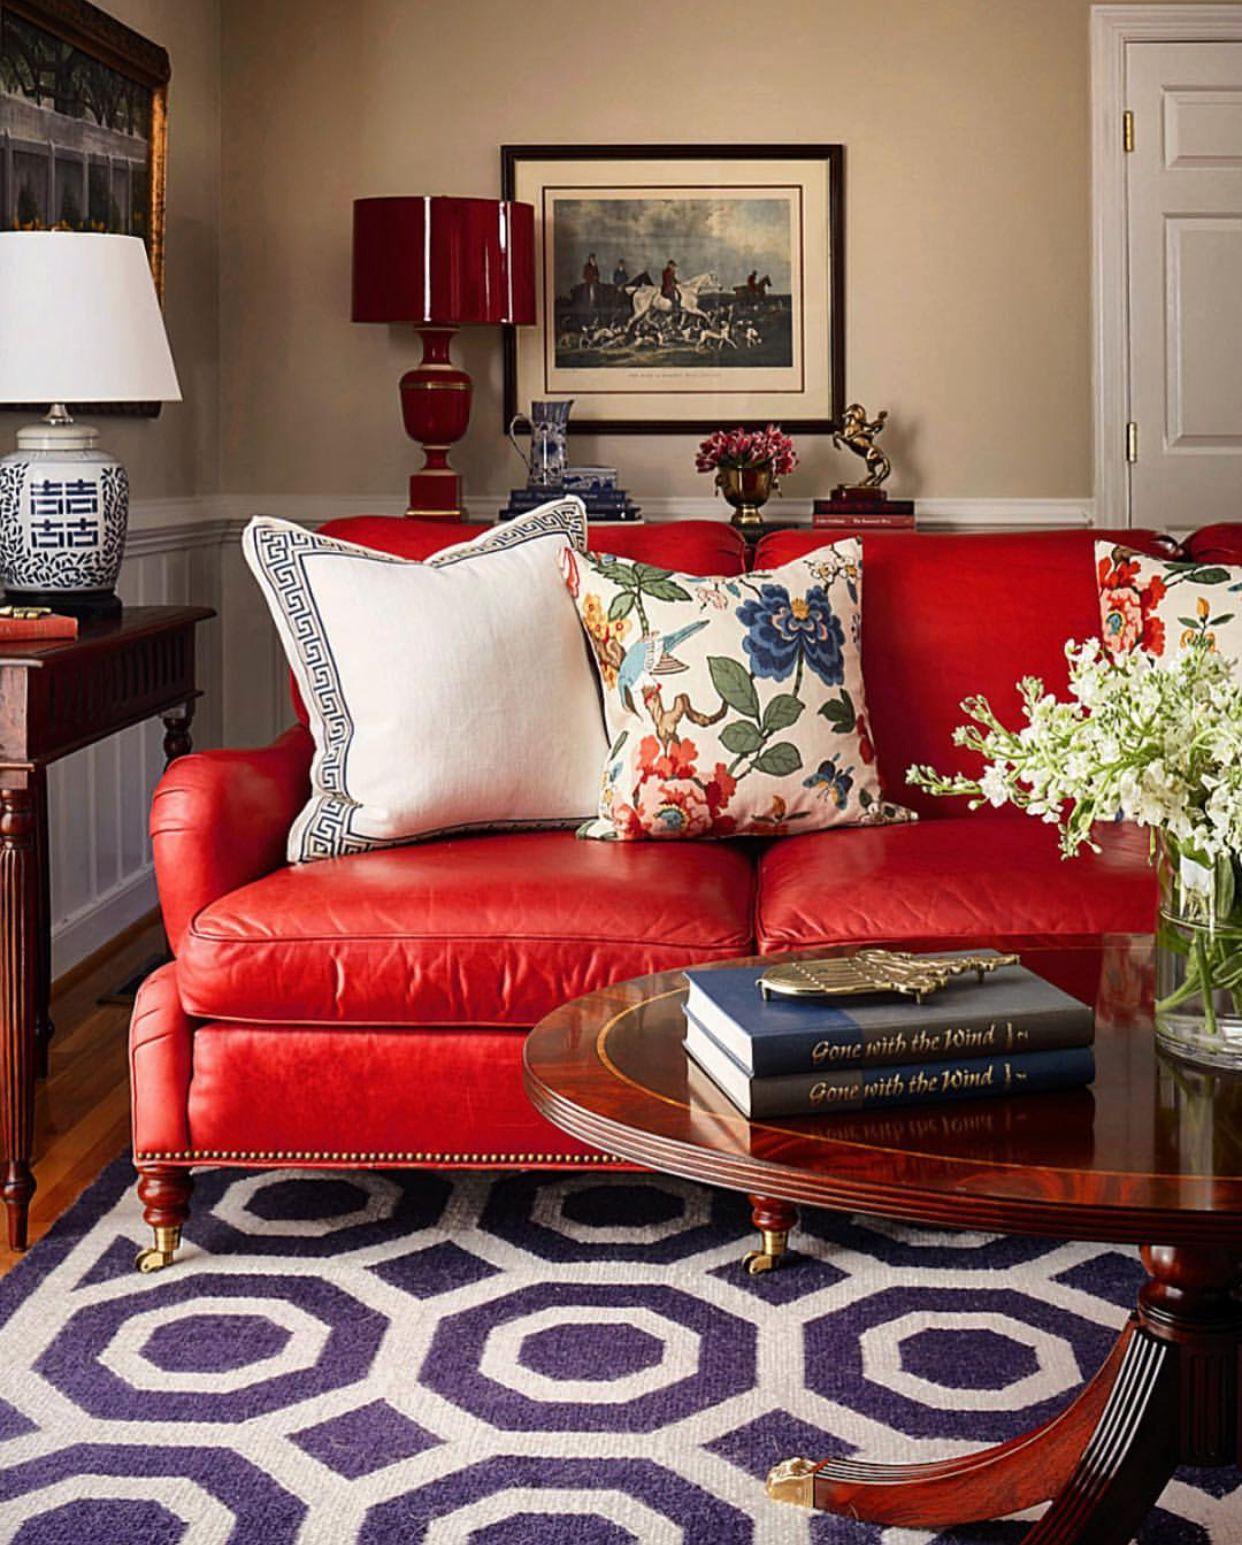 Pin By Melody Mehrabi On Home Decoration Red Sofa Living Room Red Leather Sofa Living Room Red Couch Living Room